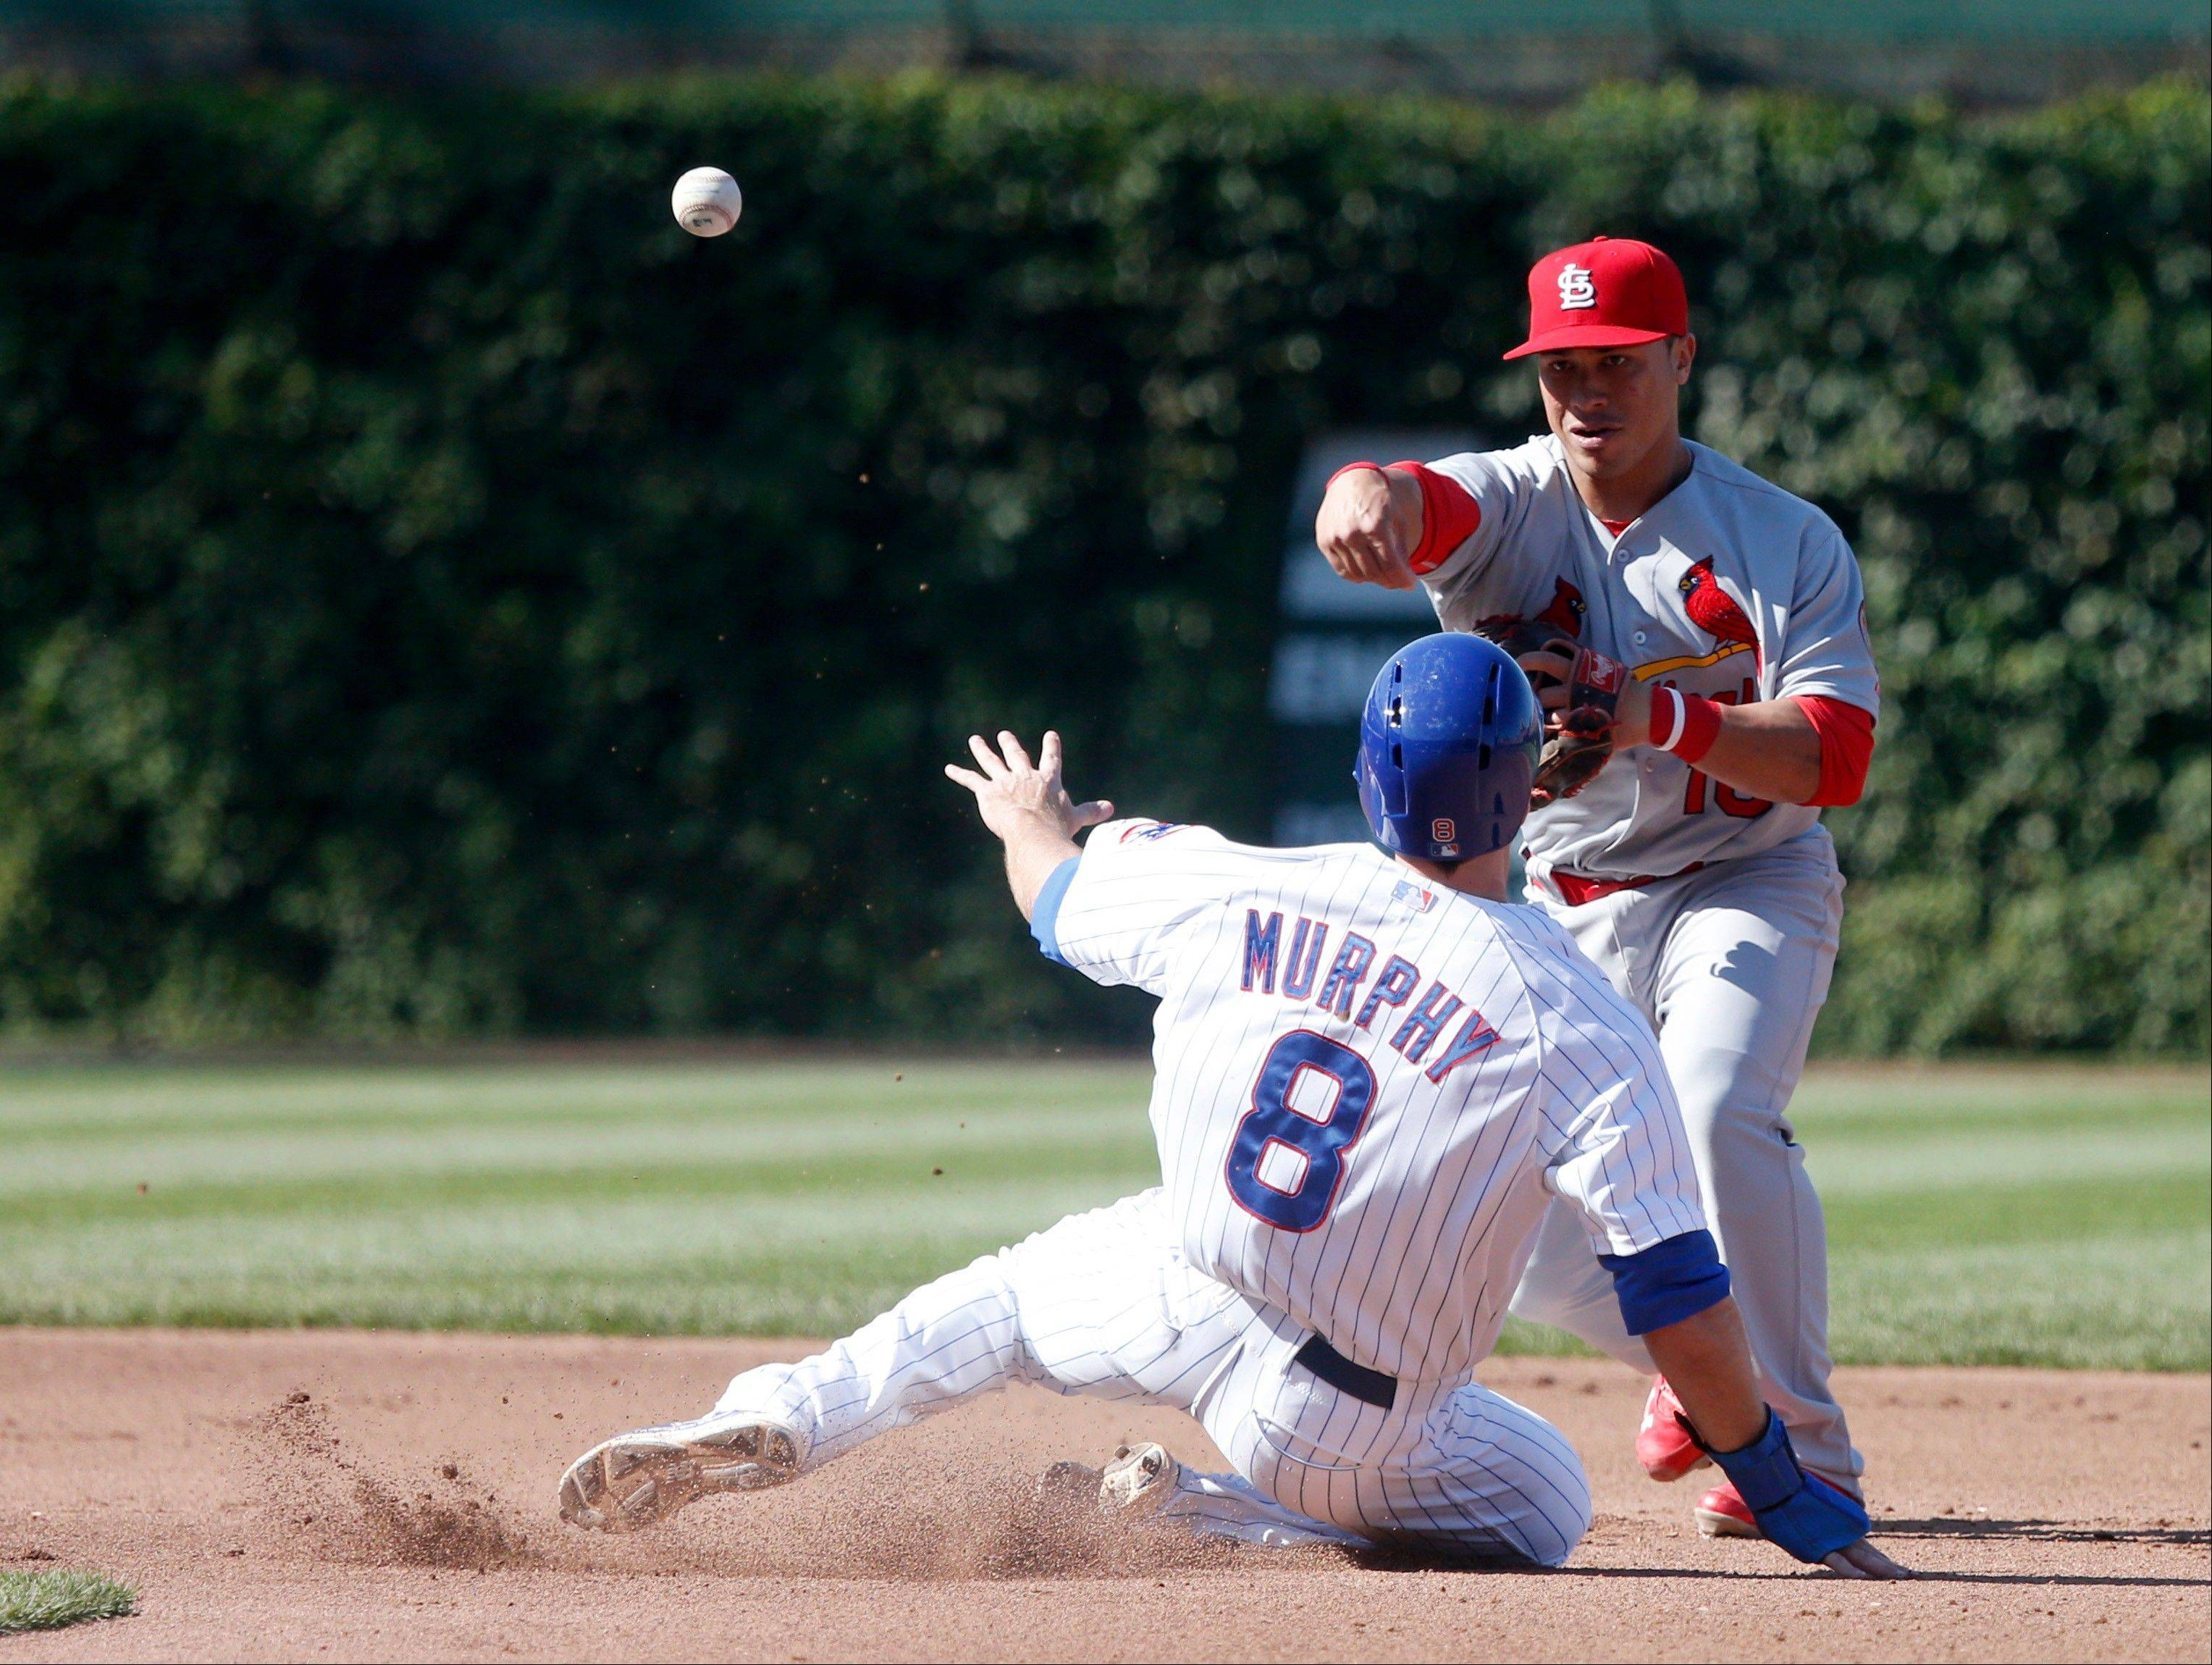 St. Louis Cardinals second baseman Kolten Wong, right, turns the double play forcing out Chicago Cubs� Donnie Murphy (8) at second and getting Starlin Castro at first during the fourth inning of a baseball game on Friday, Aug. 16, 2013, in Chicago.